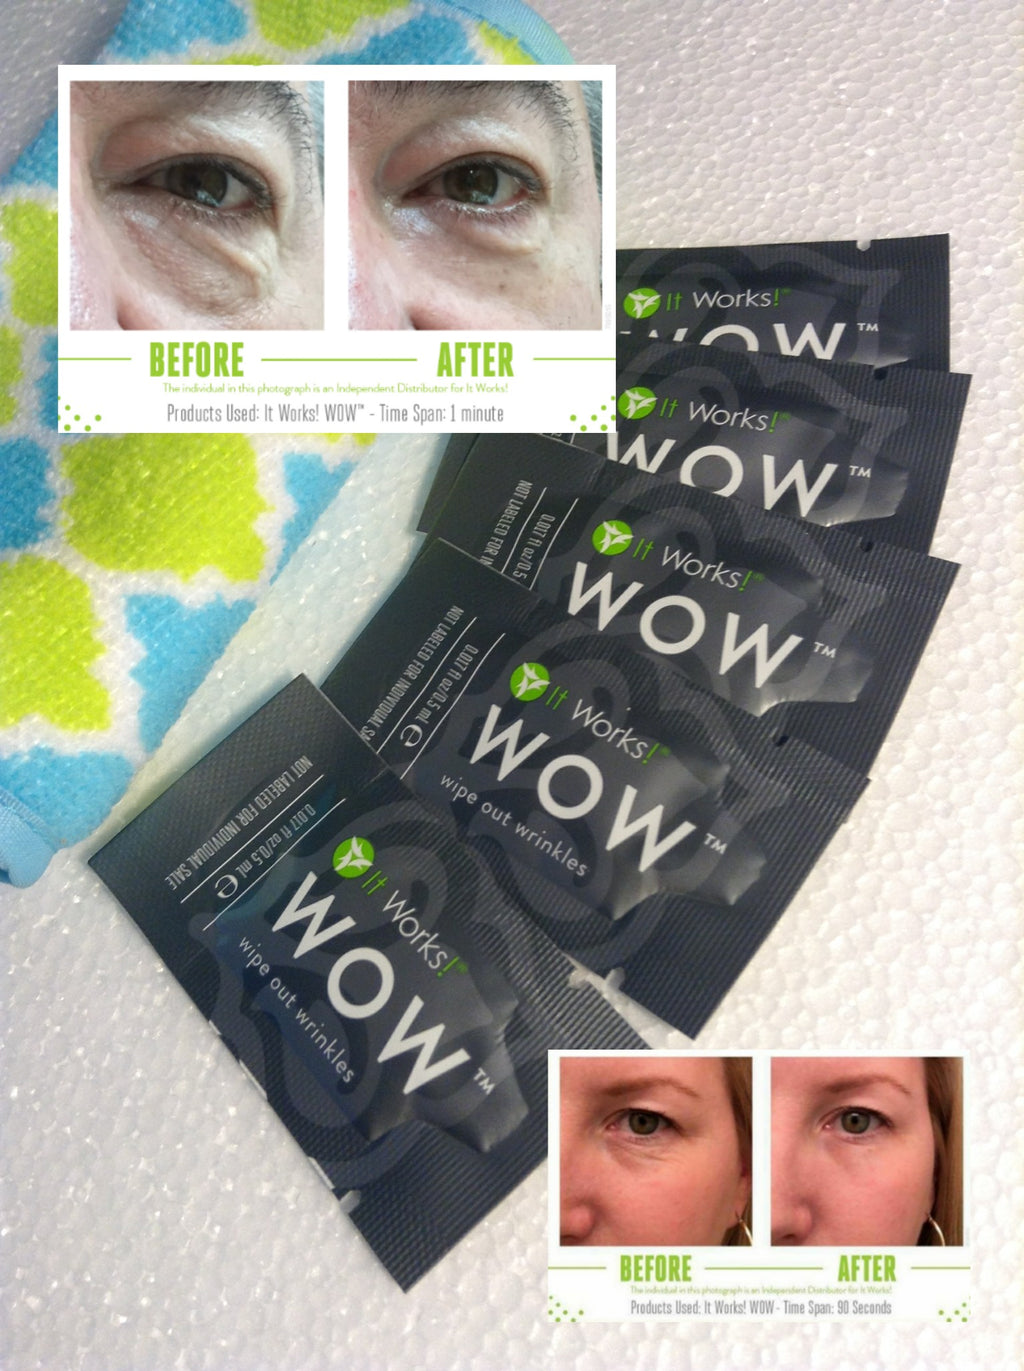 WOW - Wipes out Wrinkles! 5 pks